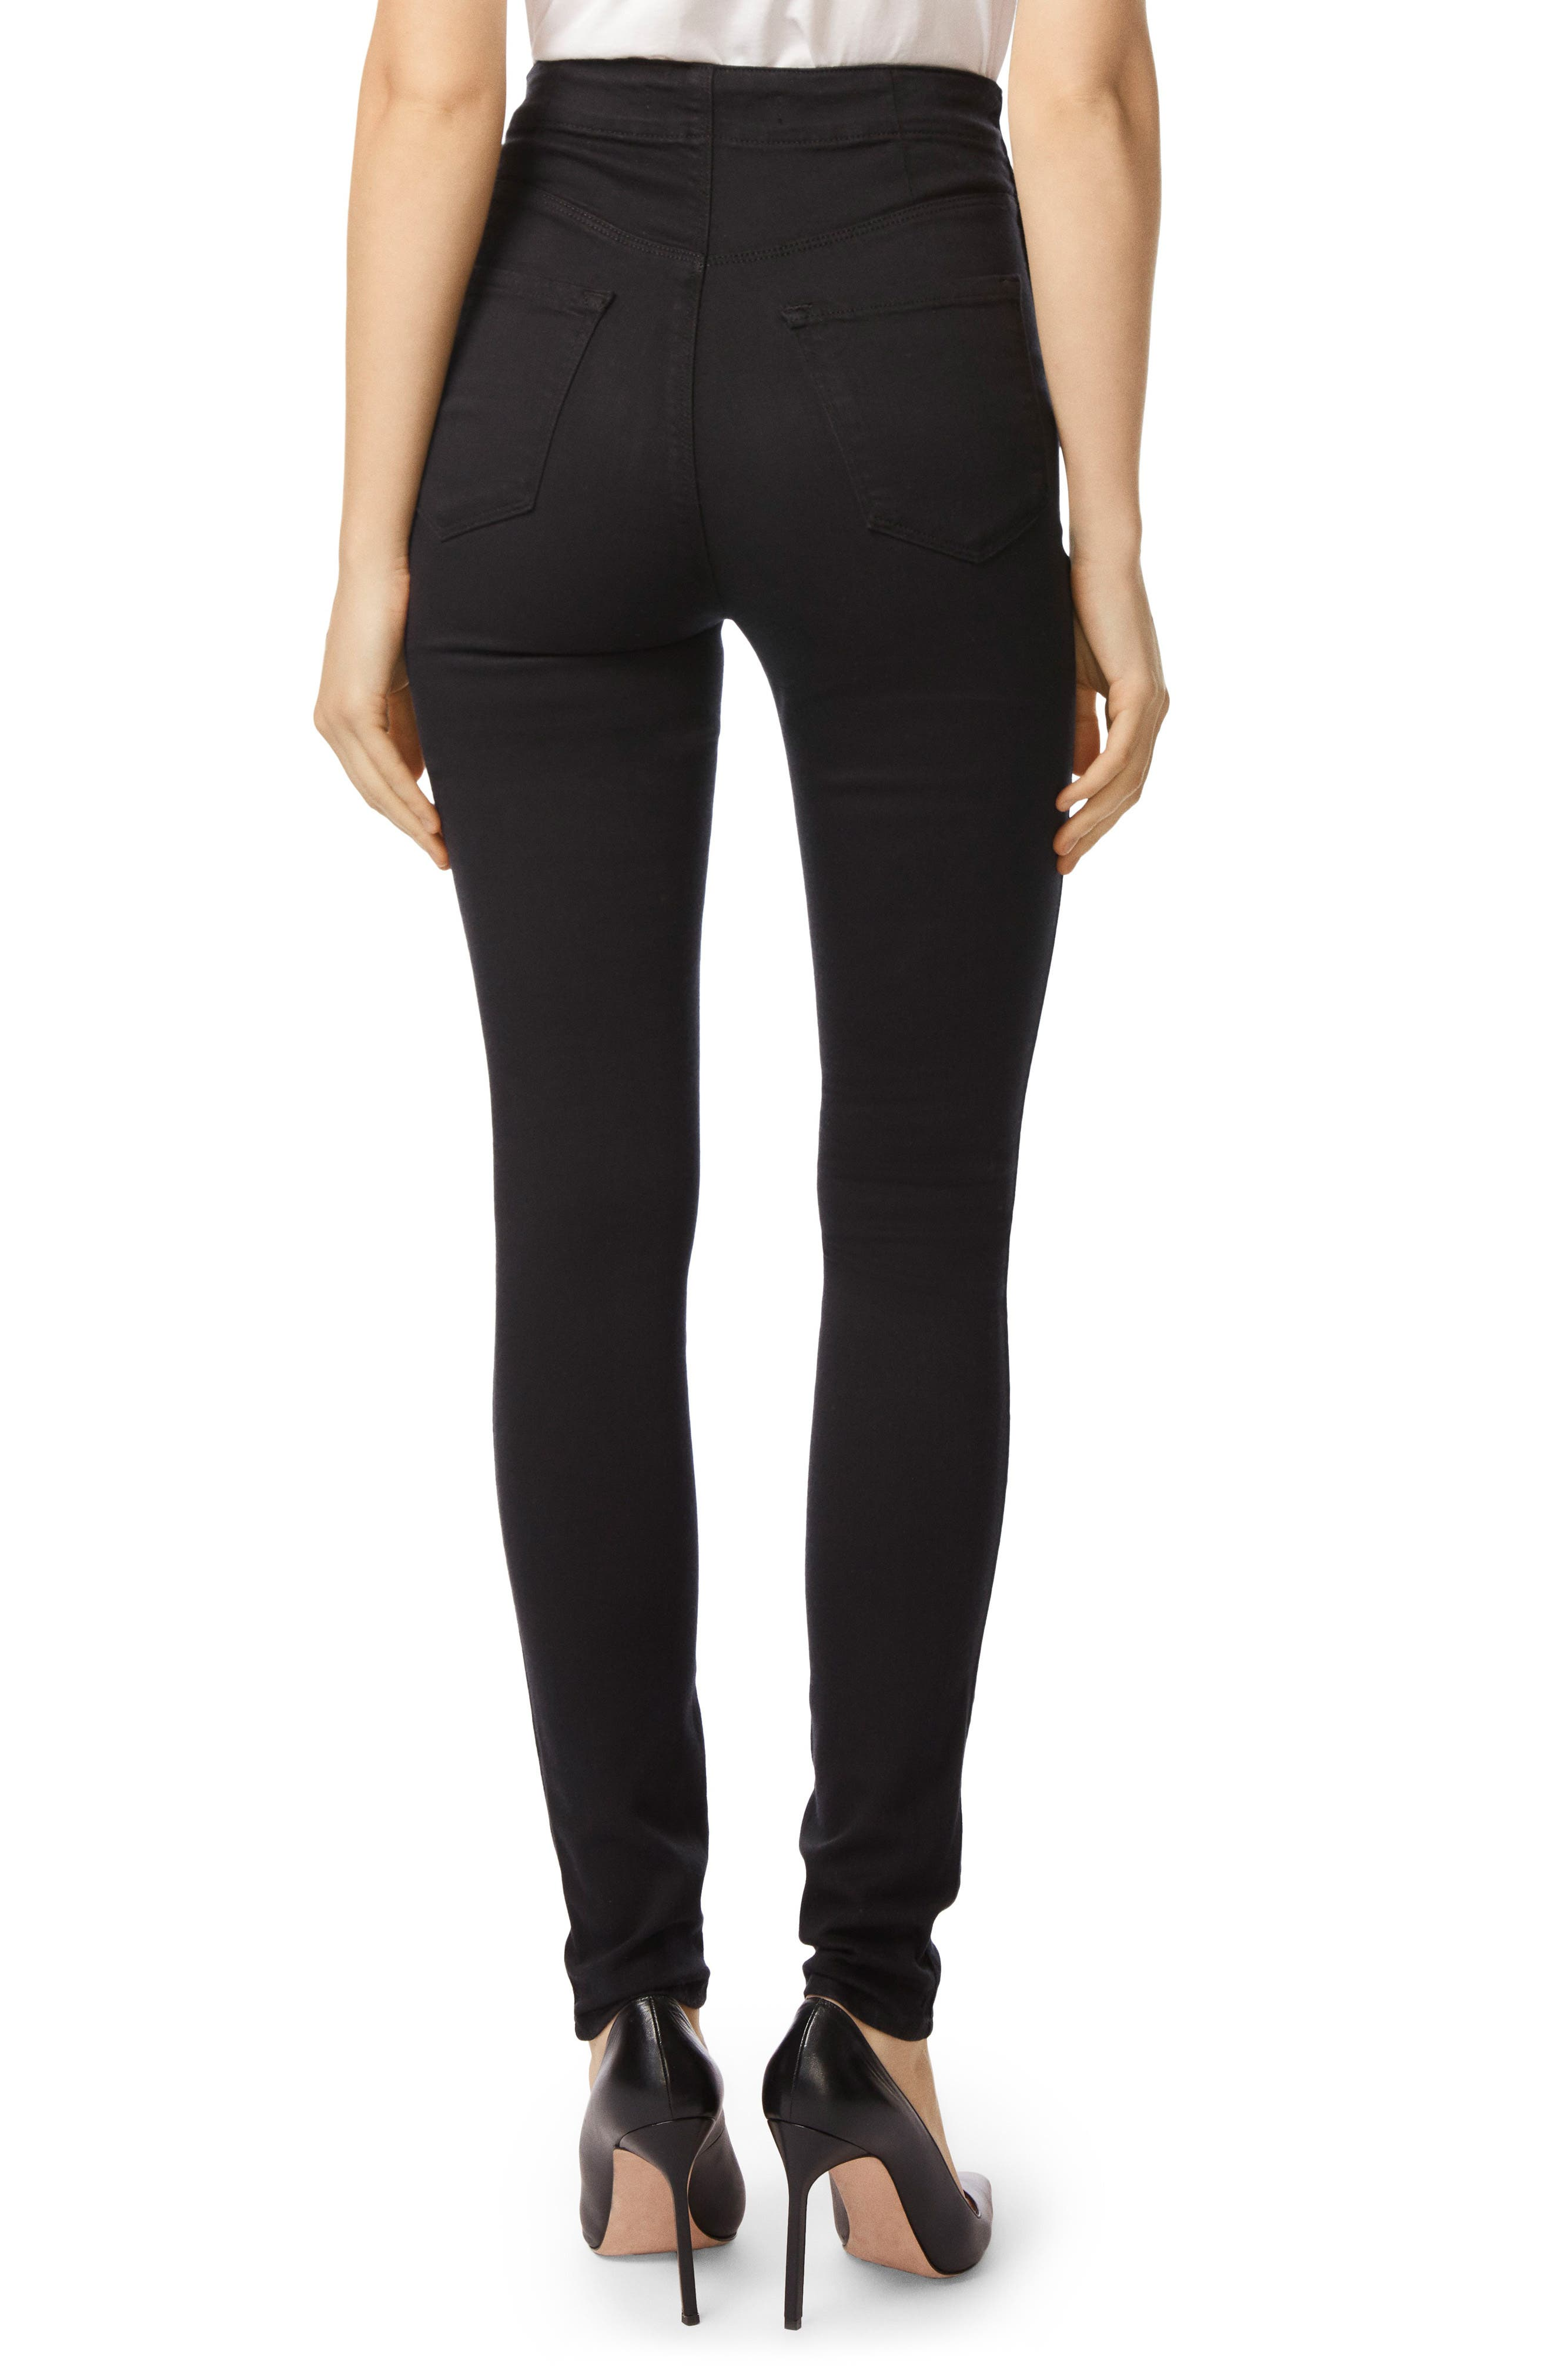 Natasha Sky High High Waist Super Skinny Jeans,                             Alternate thumbnail 3, color,                             Seriously Black